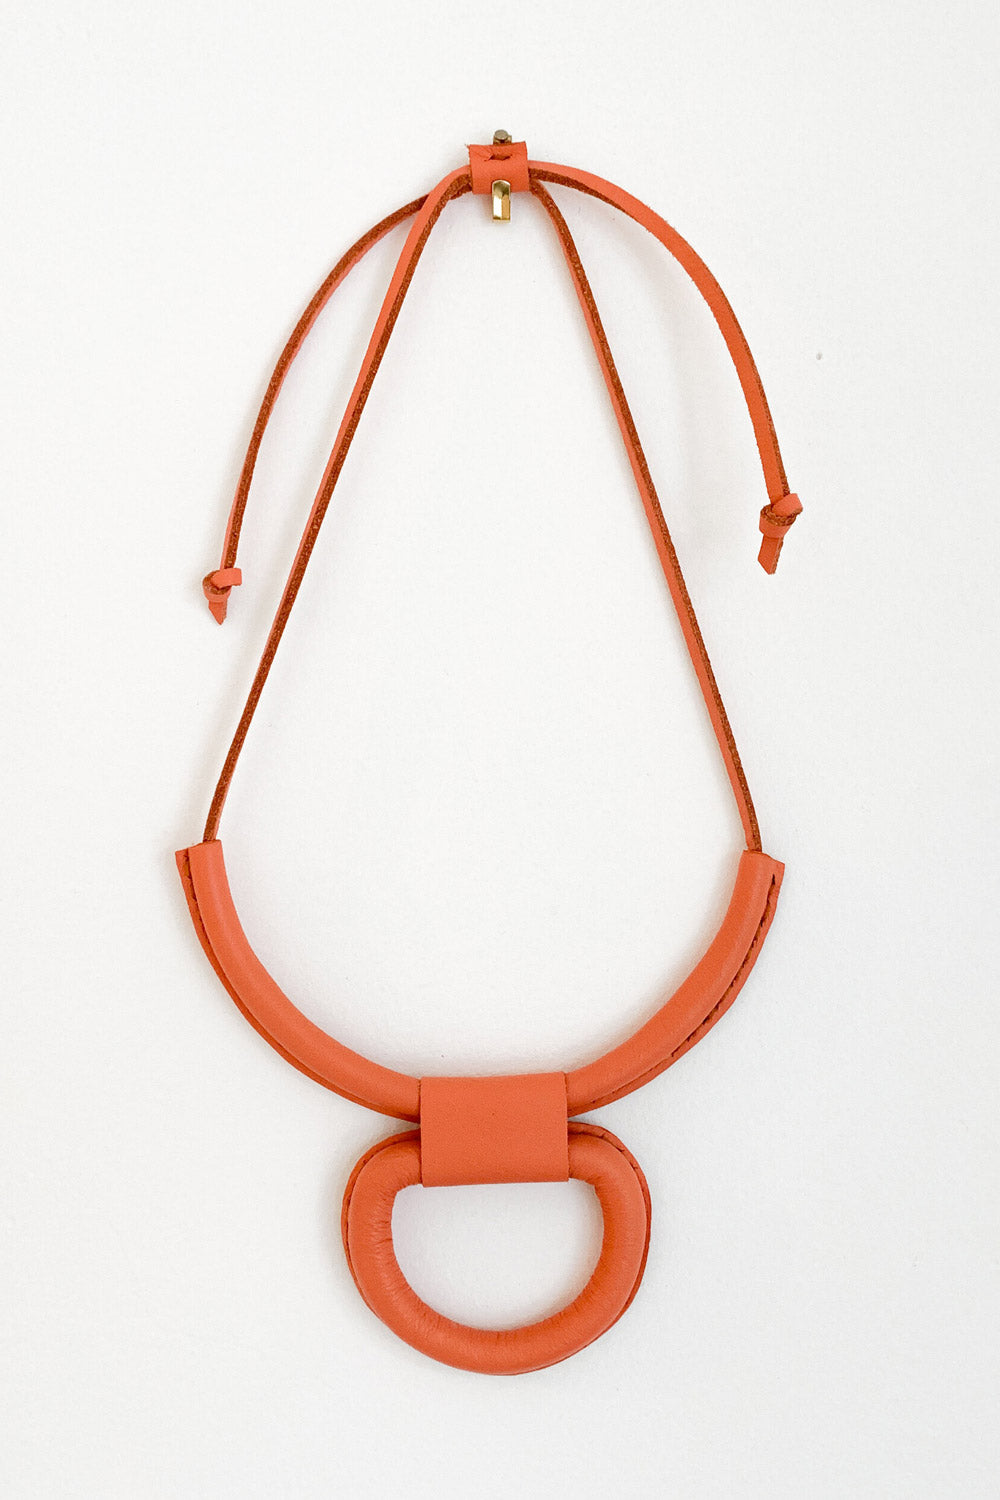 Union Necklace in Coral